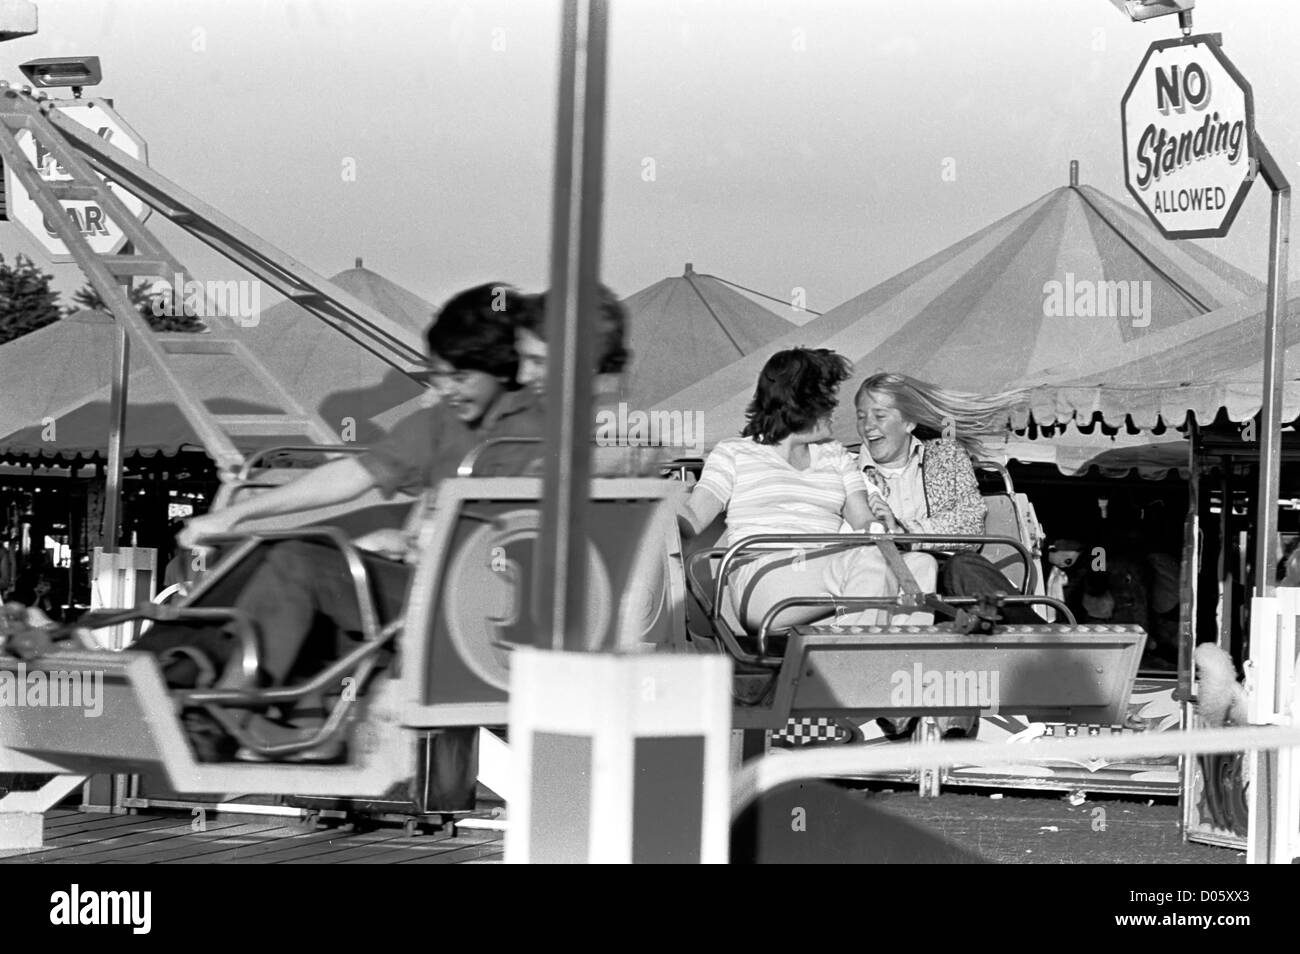 One of 25 pictures taken in 1977 and 1979 of the funfair that came to the Oval in Hastings most years. - Stock Image